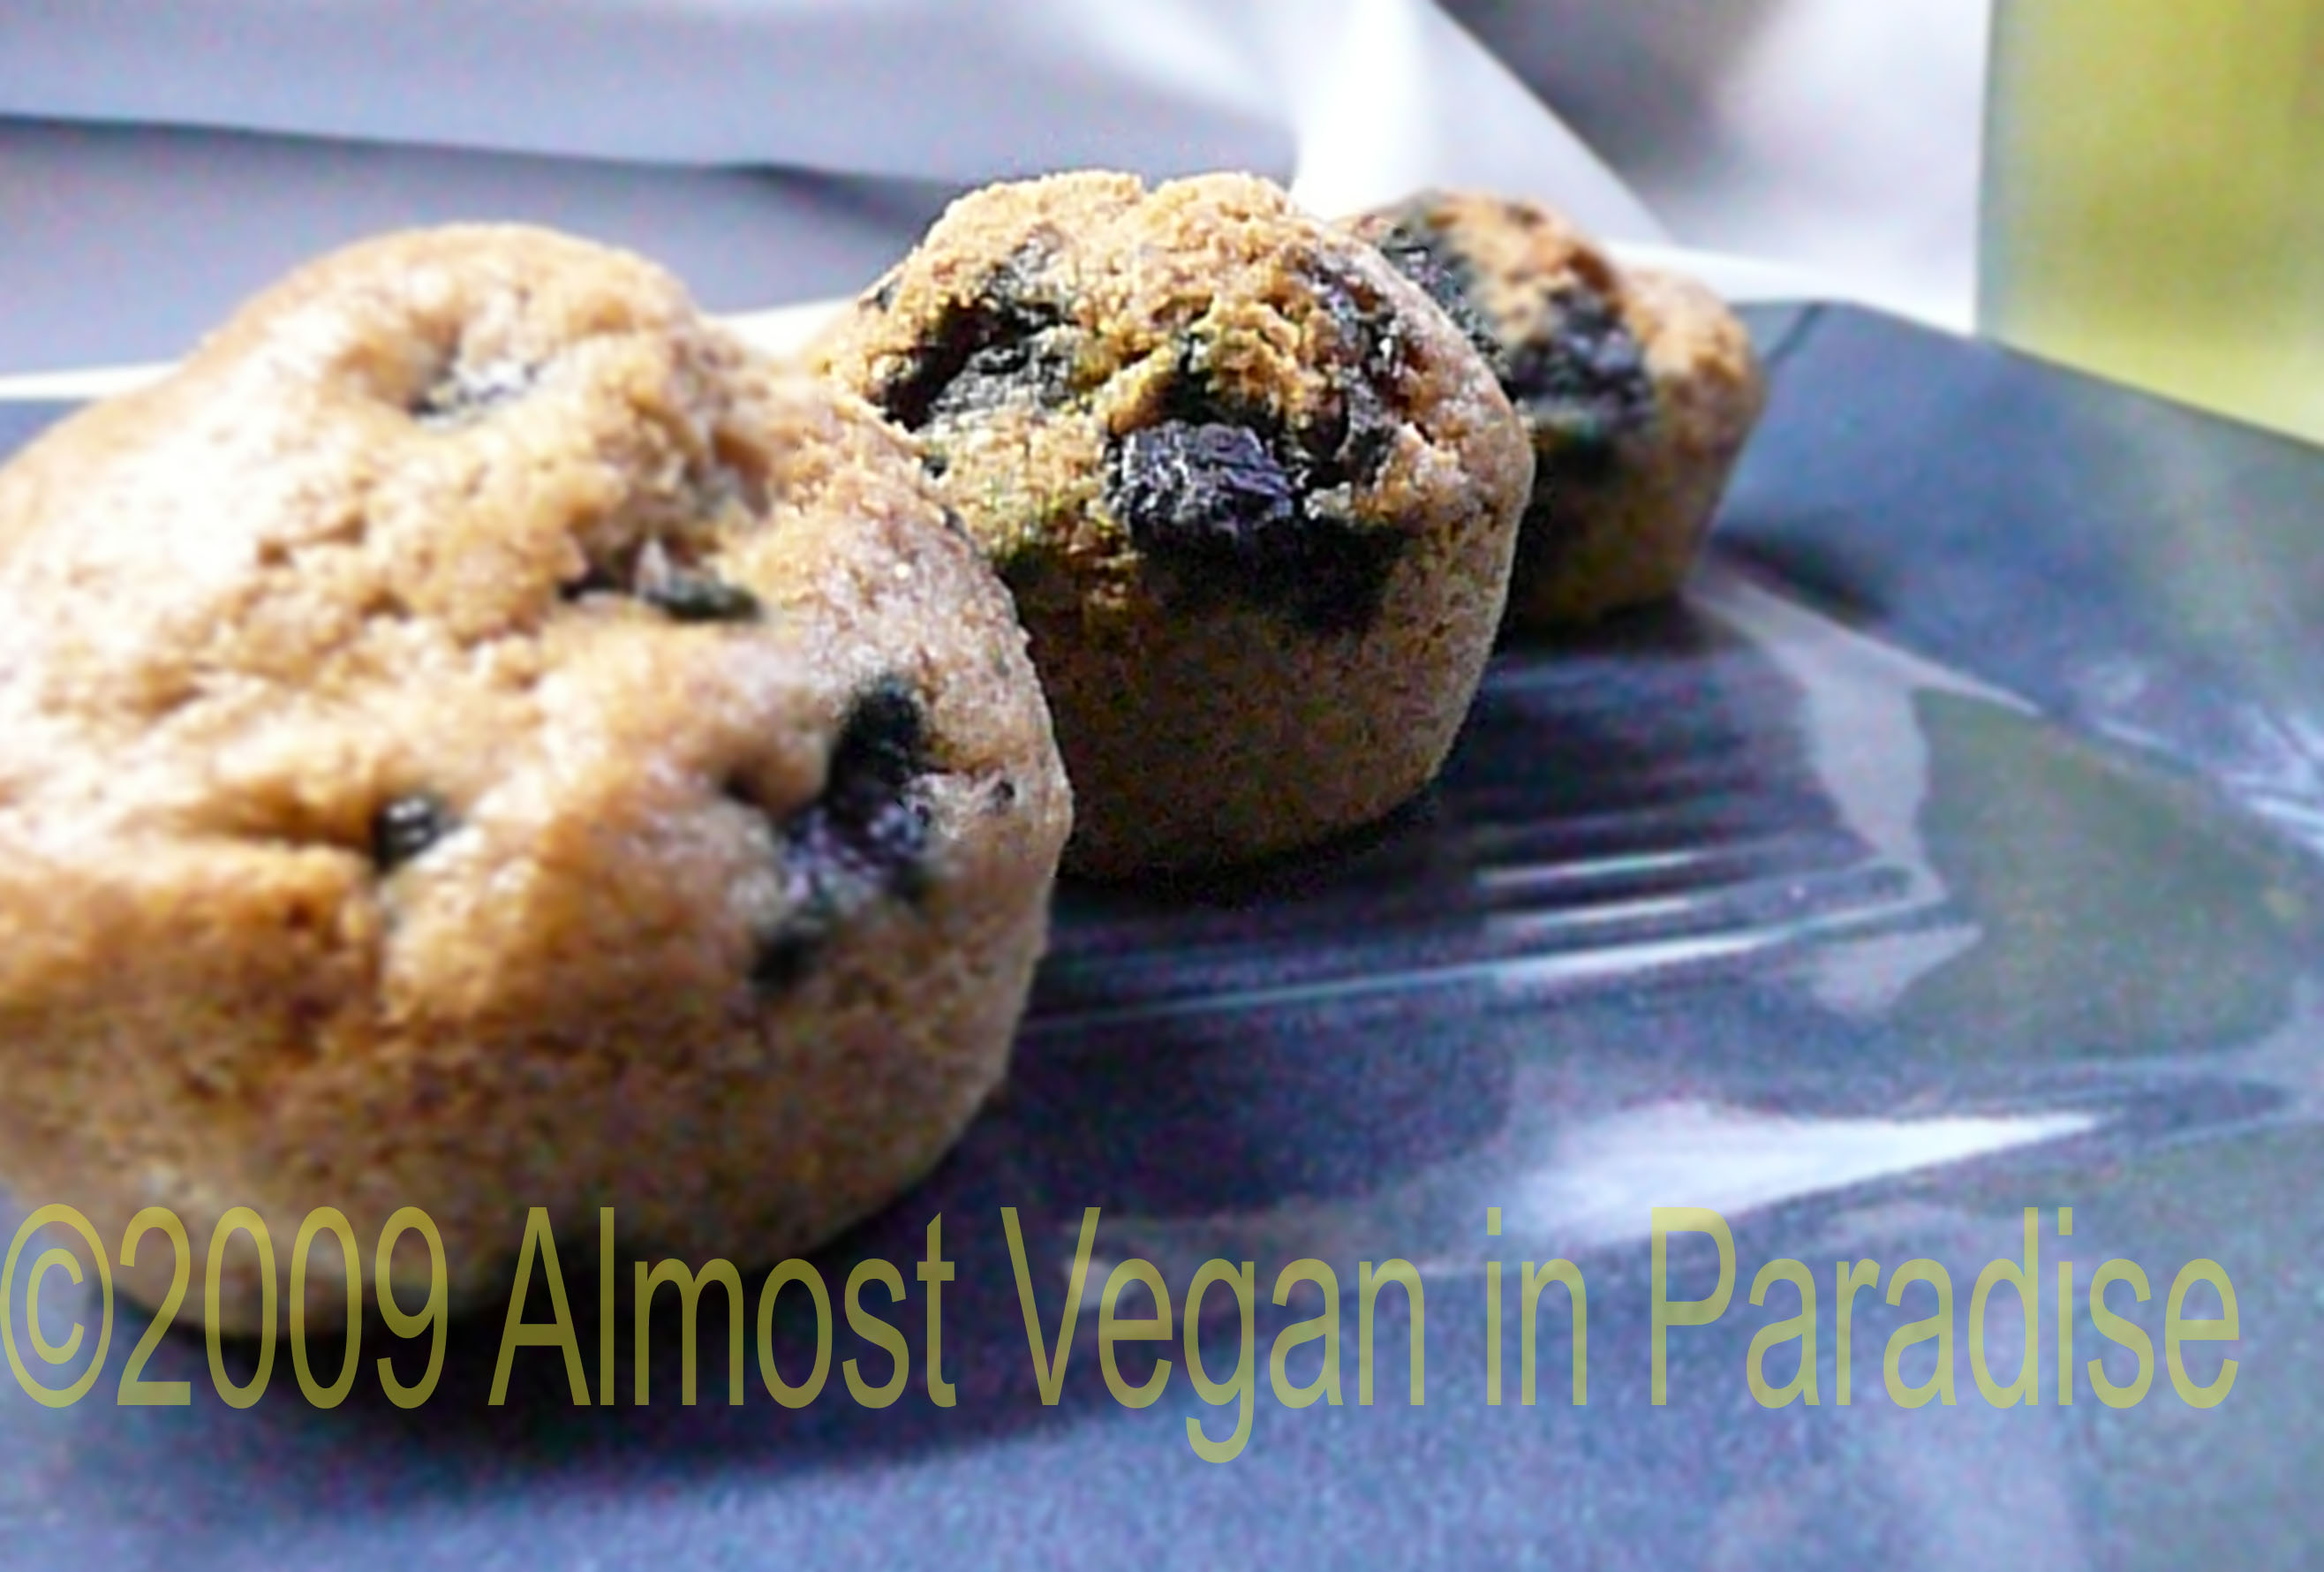 7ee6d723a5 Vegan Blueberry Muffins | Almost Vegan In Paradise